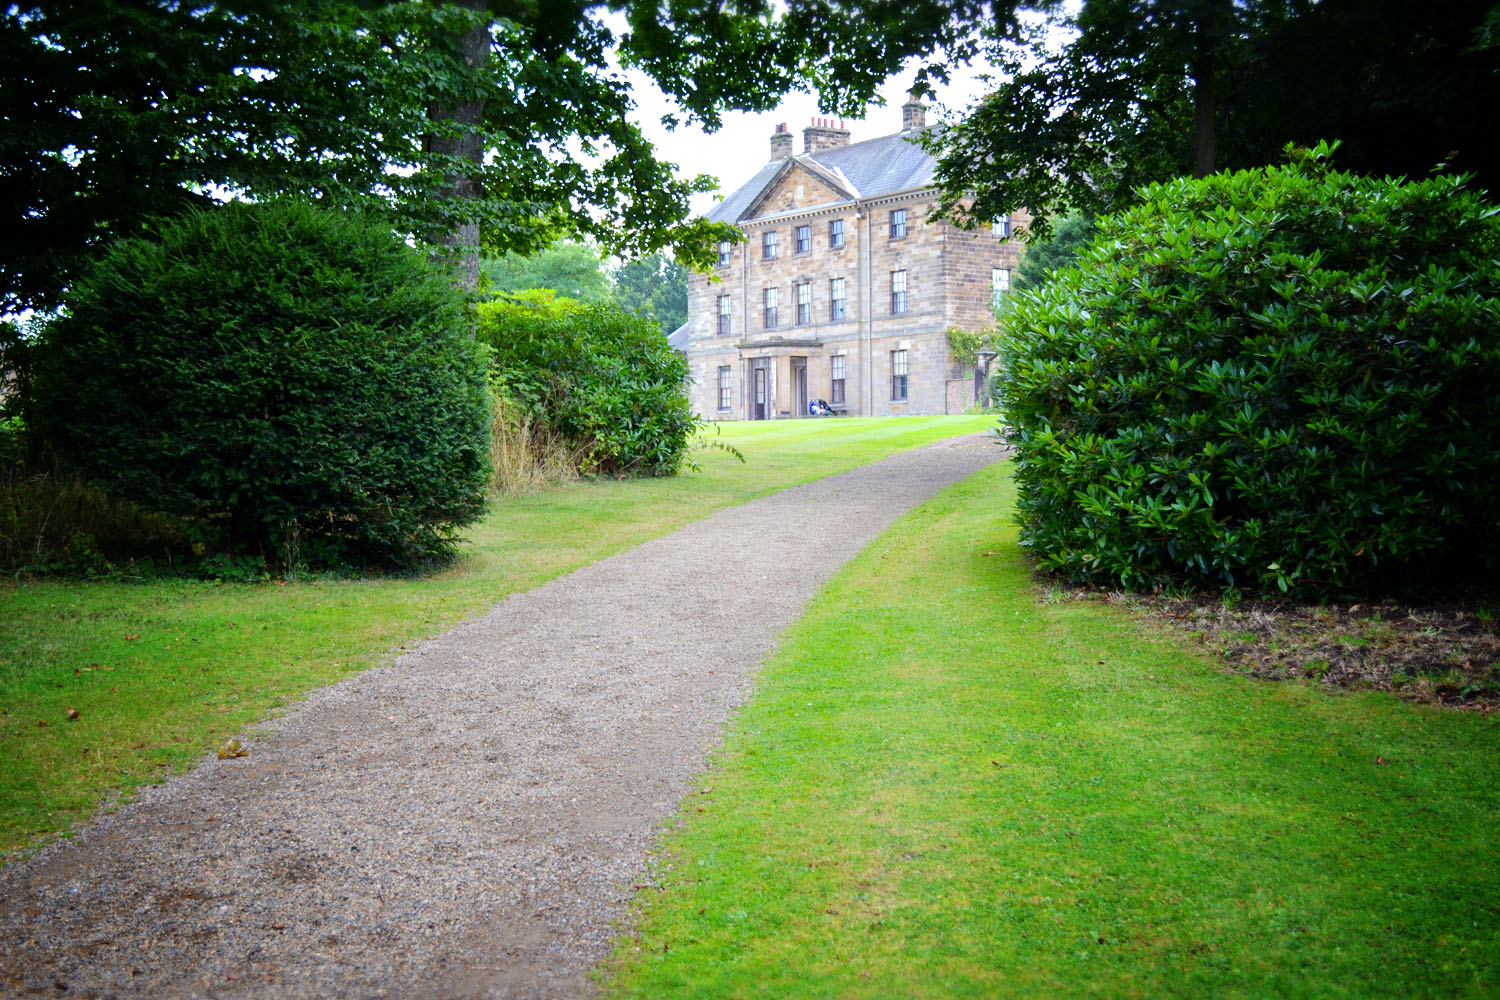 Glimpse of Ormesby Hall